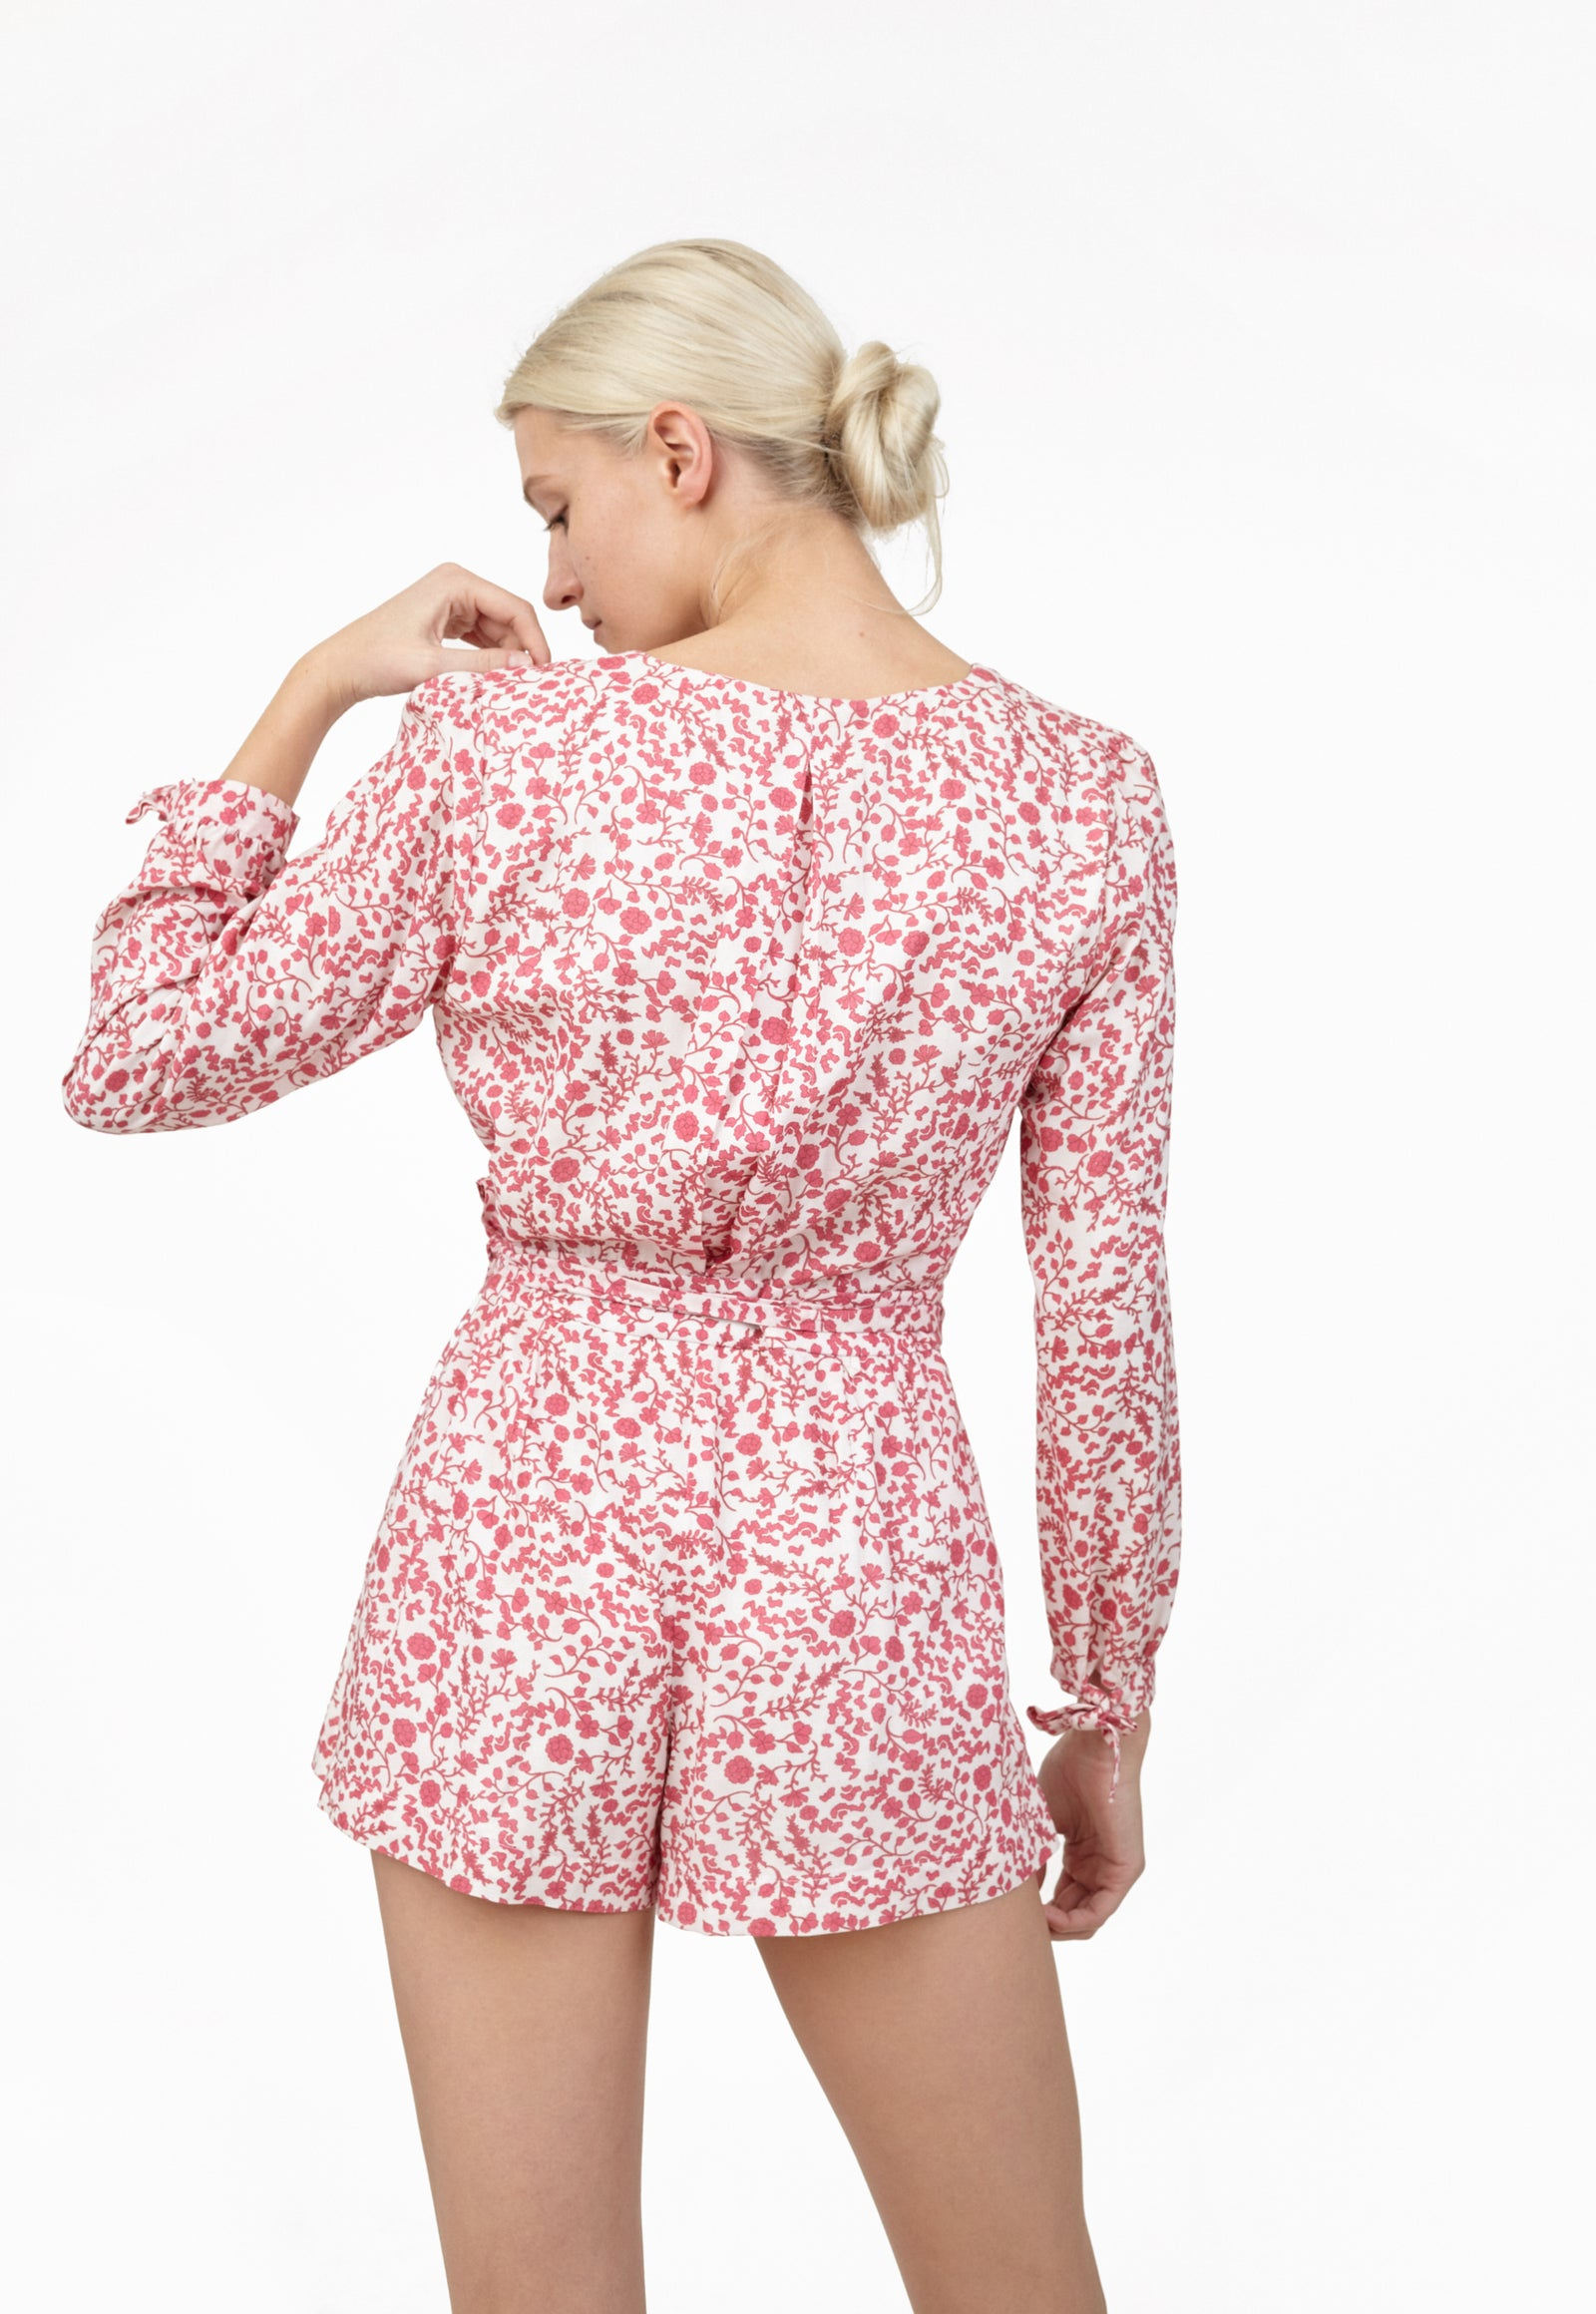 6 Shore Road Boardwalk Romper Women's Floral Romper in 0,2,4,6,8,10,12 - Summer 2018 Collection